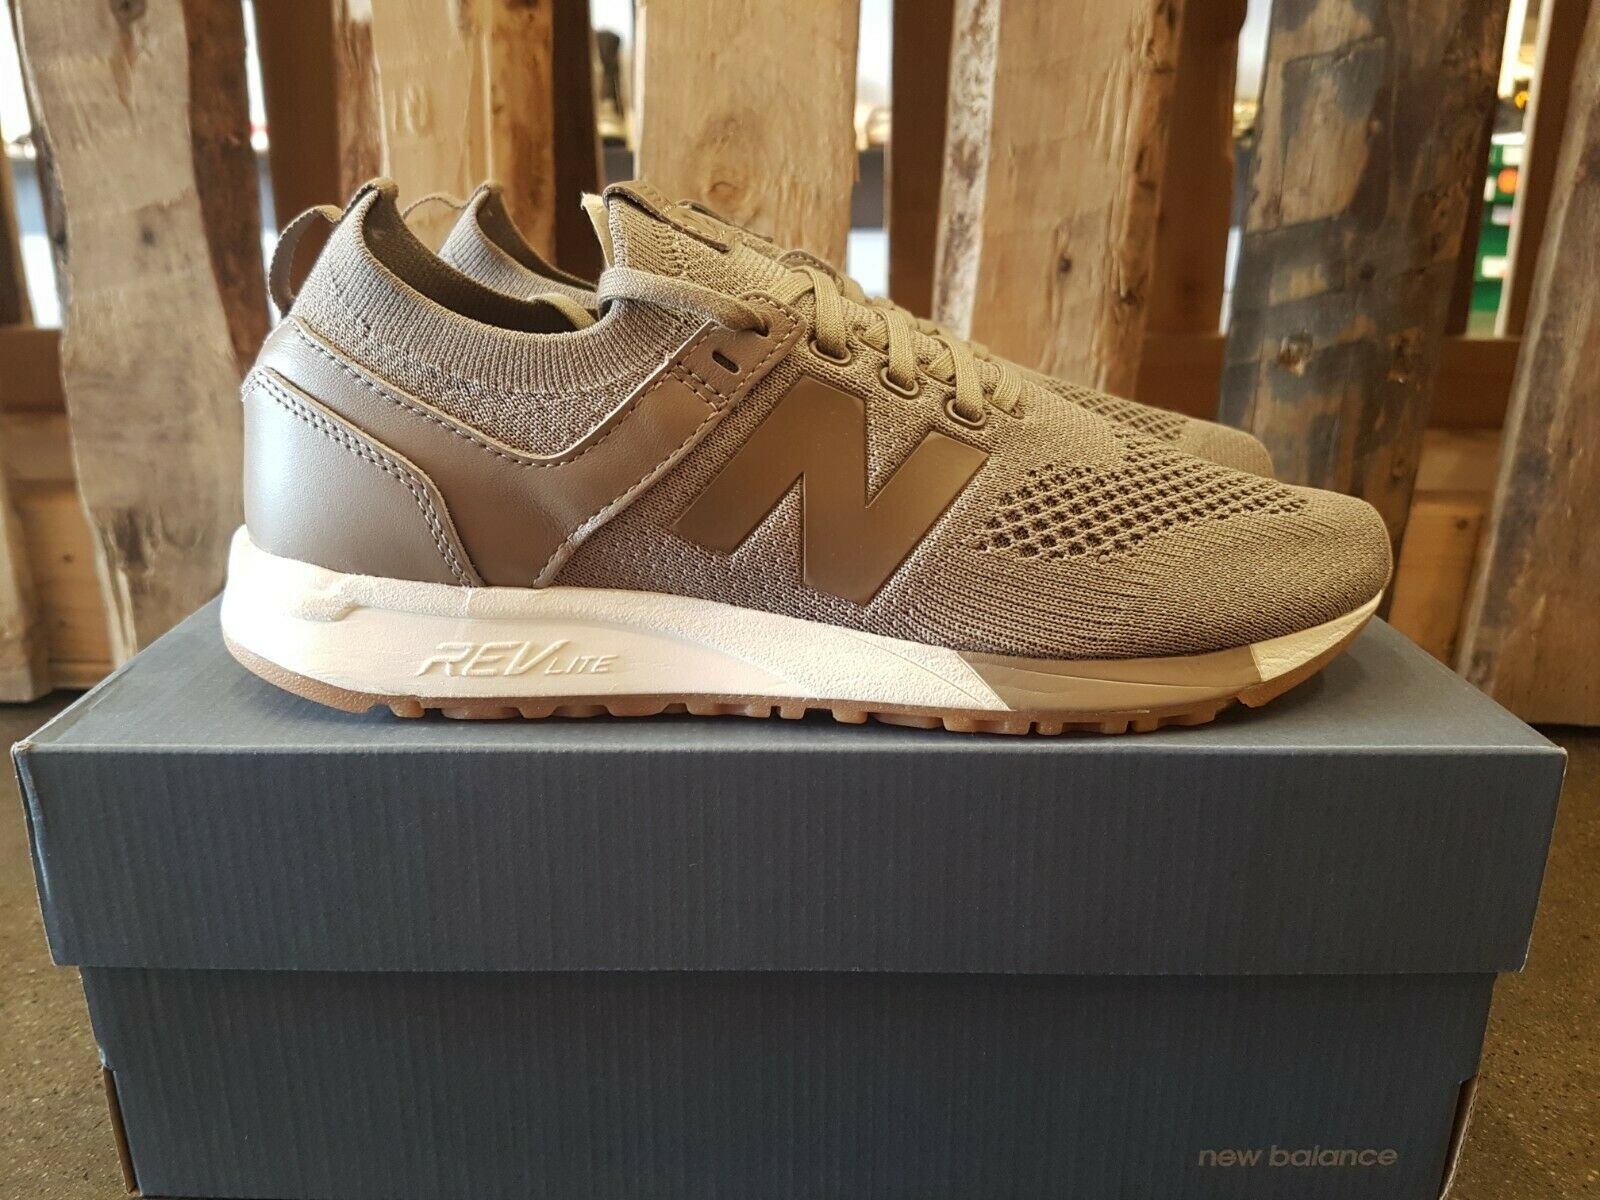 NEW IN THE BOX NEW BALANCE MRL247DT BROWN CARAMEL CLASSIC SHOE FOR MEN